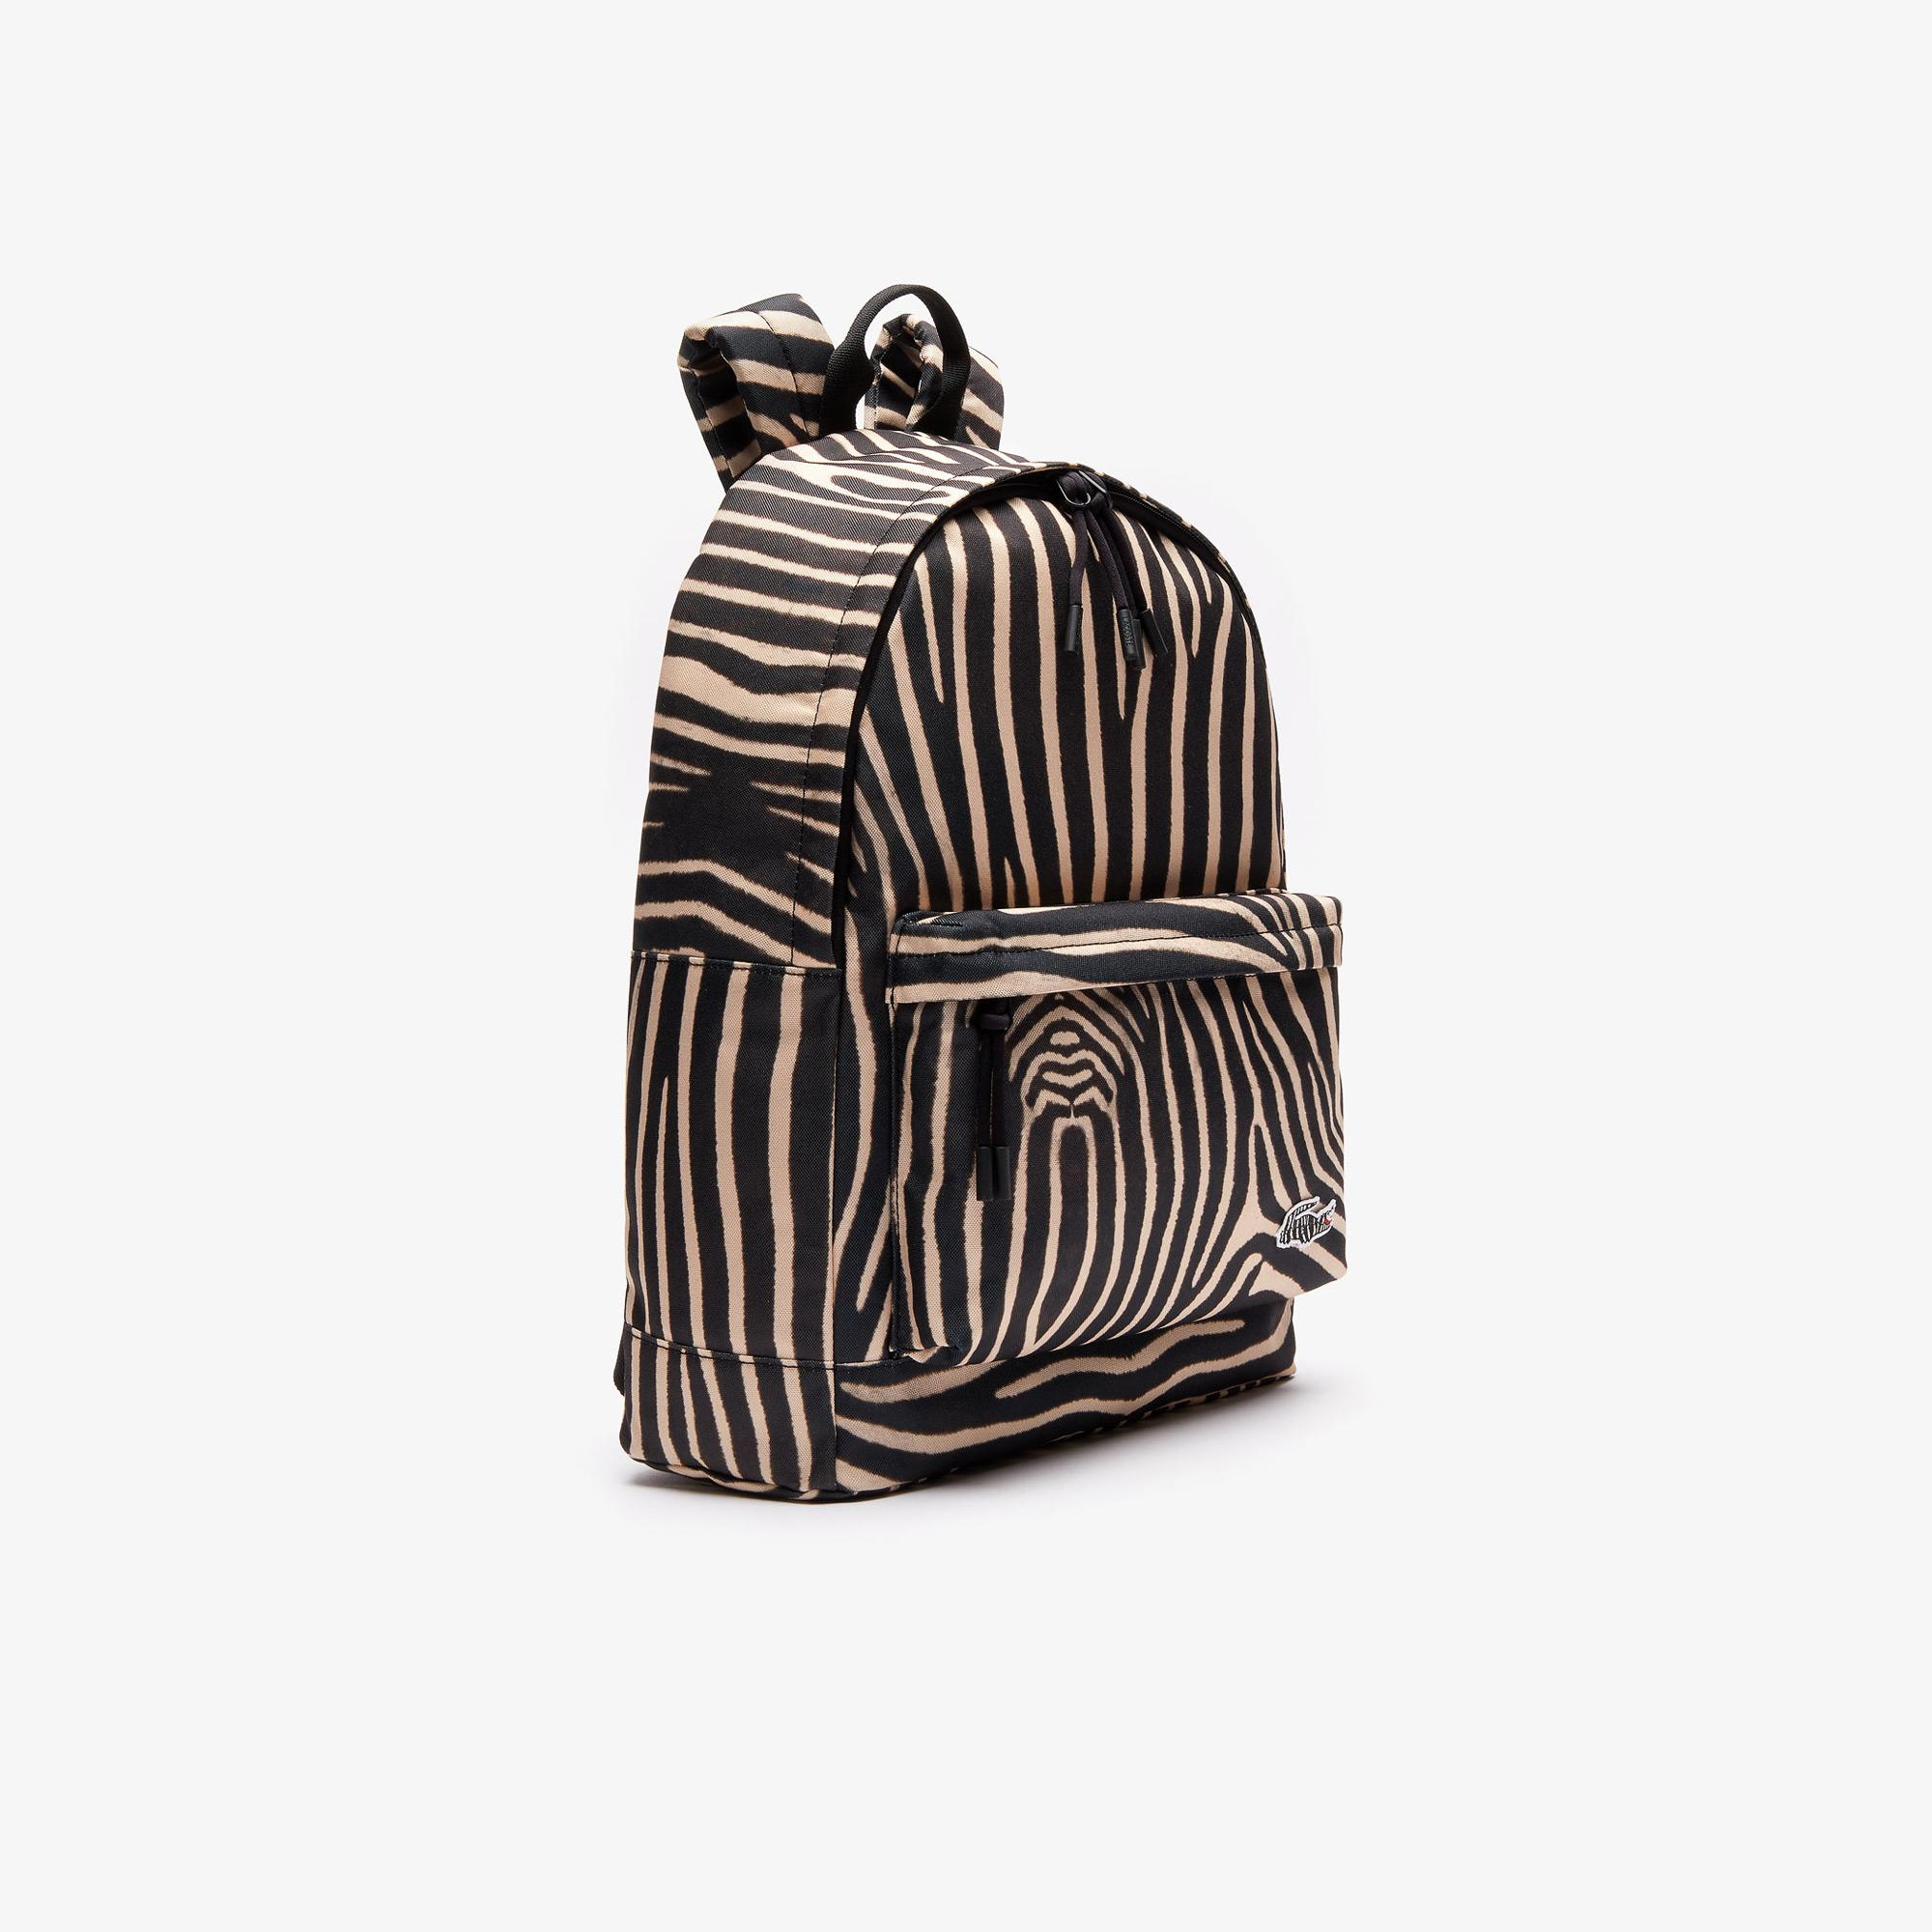 Lacoste Men's x National Geographic Animal Print Backpack